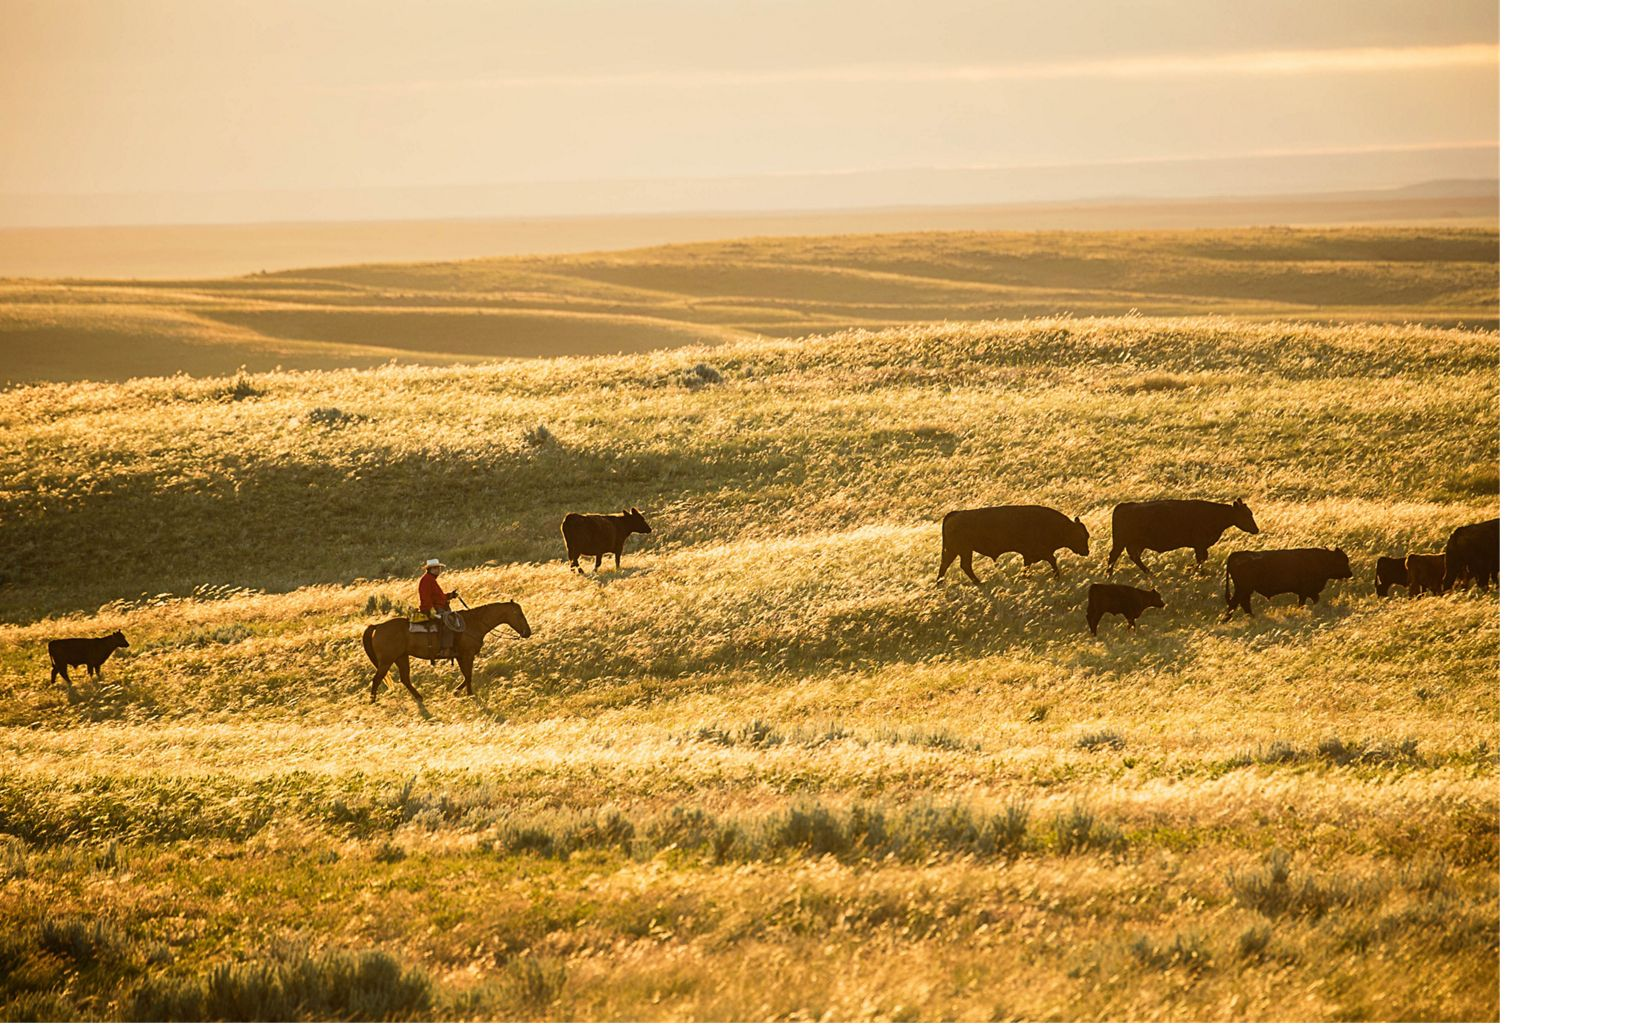 A rancher trails cattle on Matador Ranch in Montana. Increasingly, cattle are being used to create the specific kinds of grassland habitats needed by sage grouse and other native wildlife.